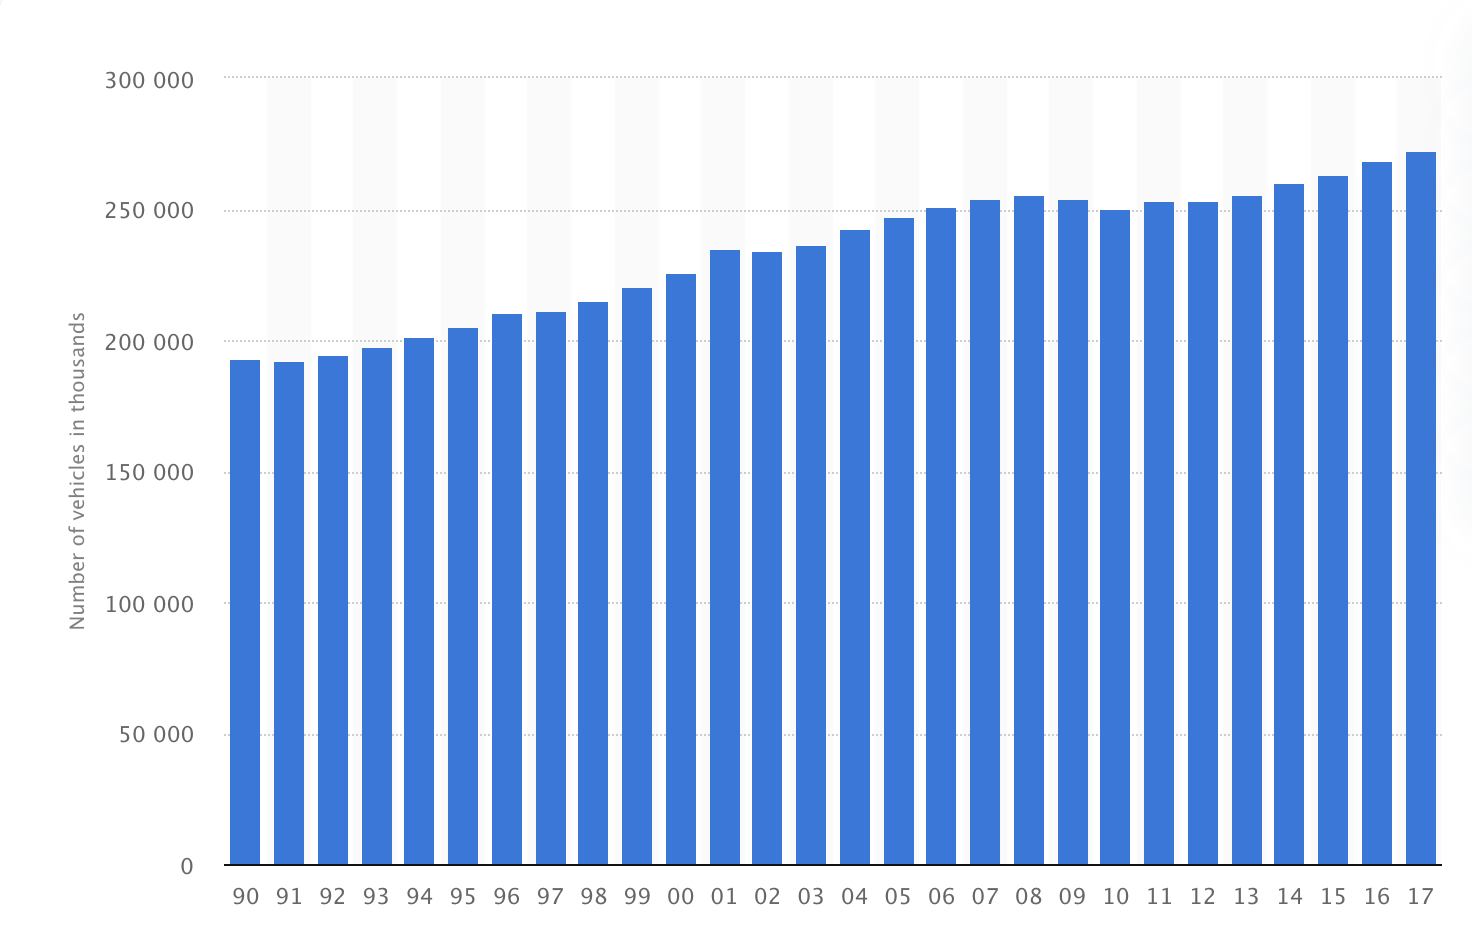 Number of motor vehicles registered in the United States from 1990 to 2017